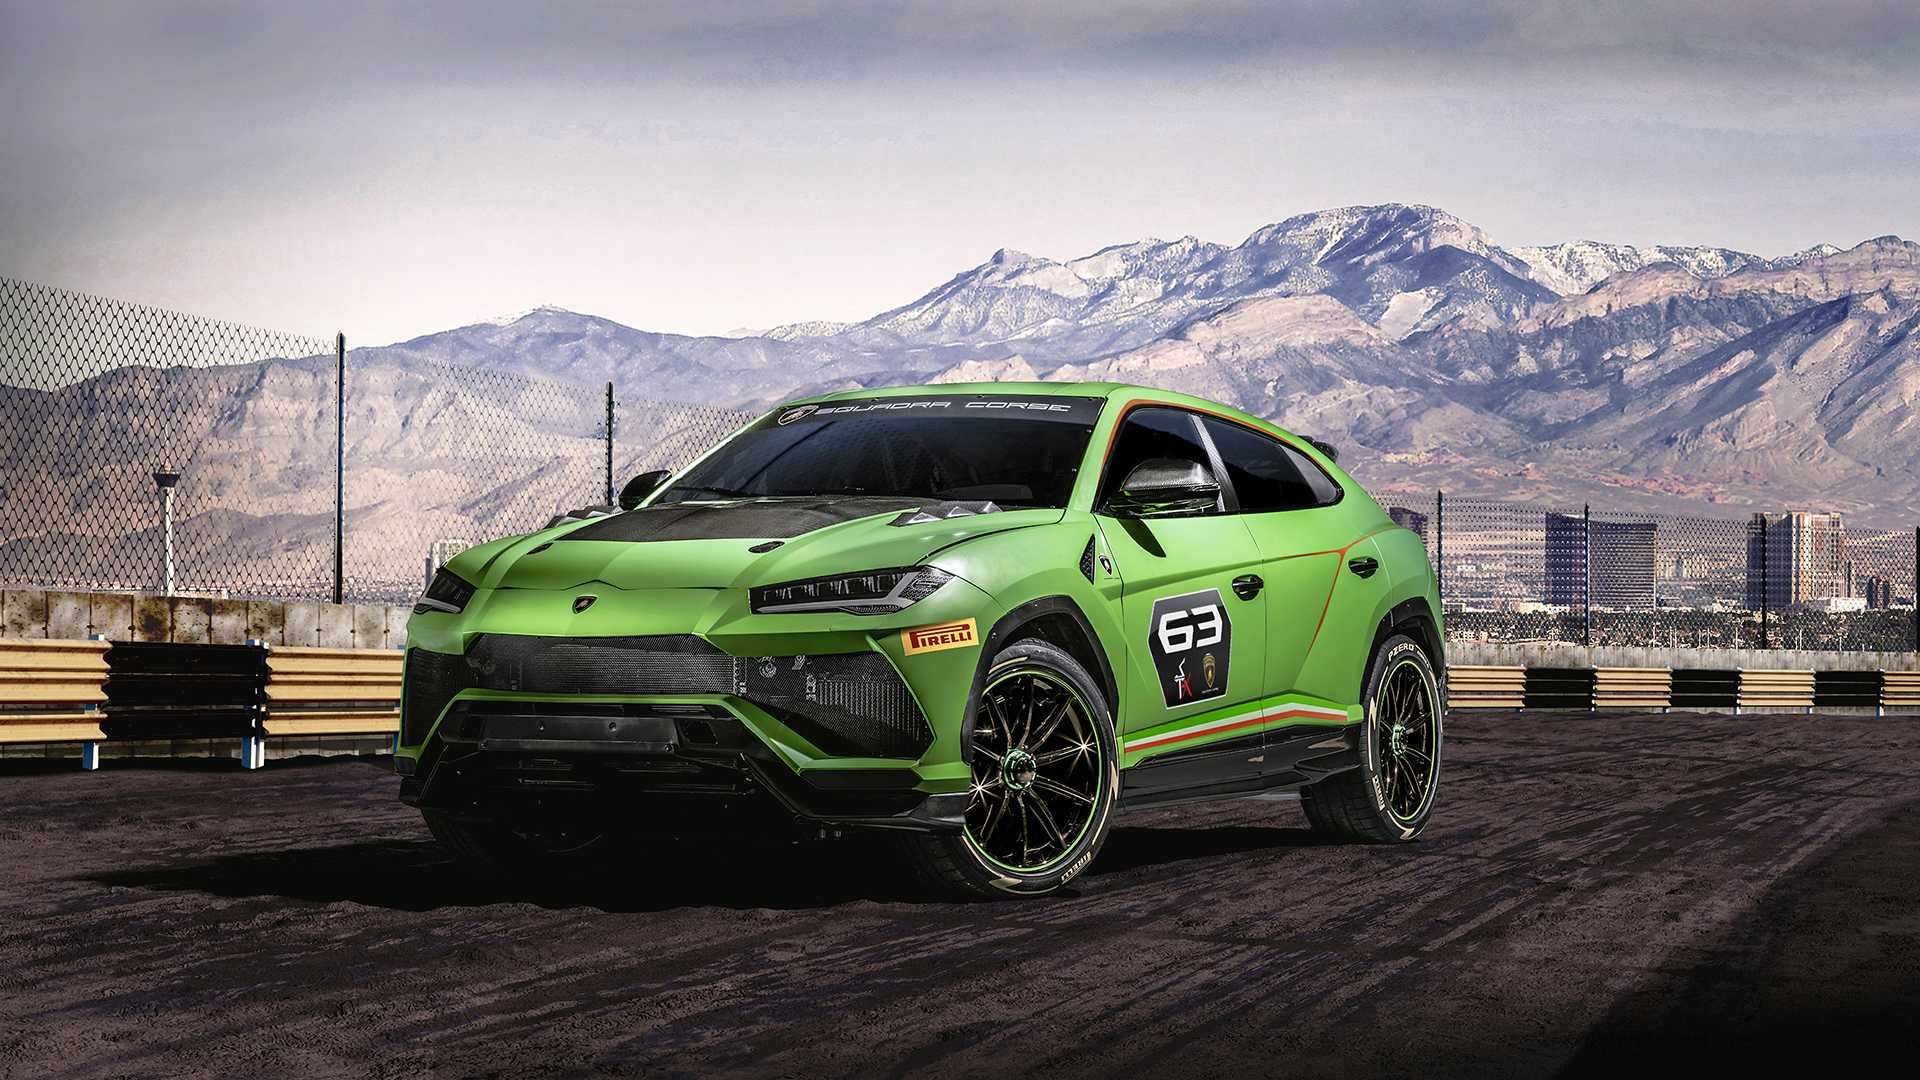 Lamborghini is Creating its Own Rallycross Series for the Urus